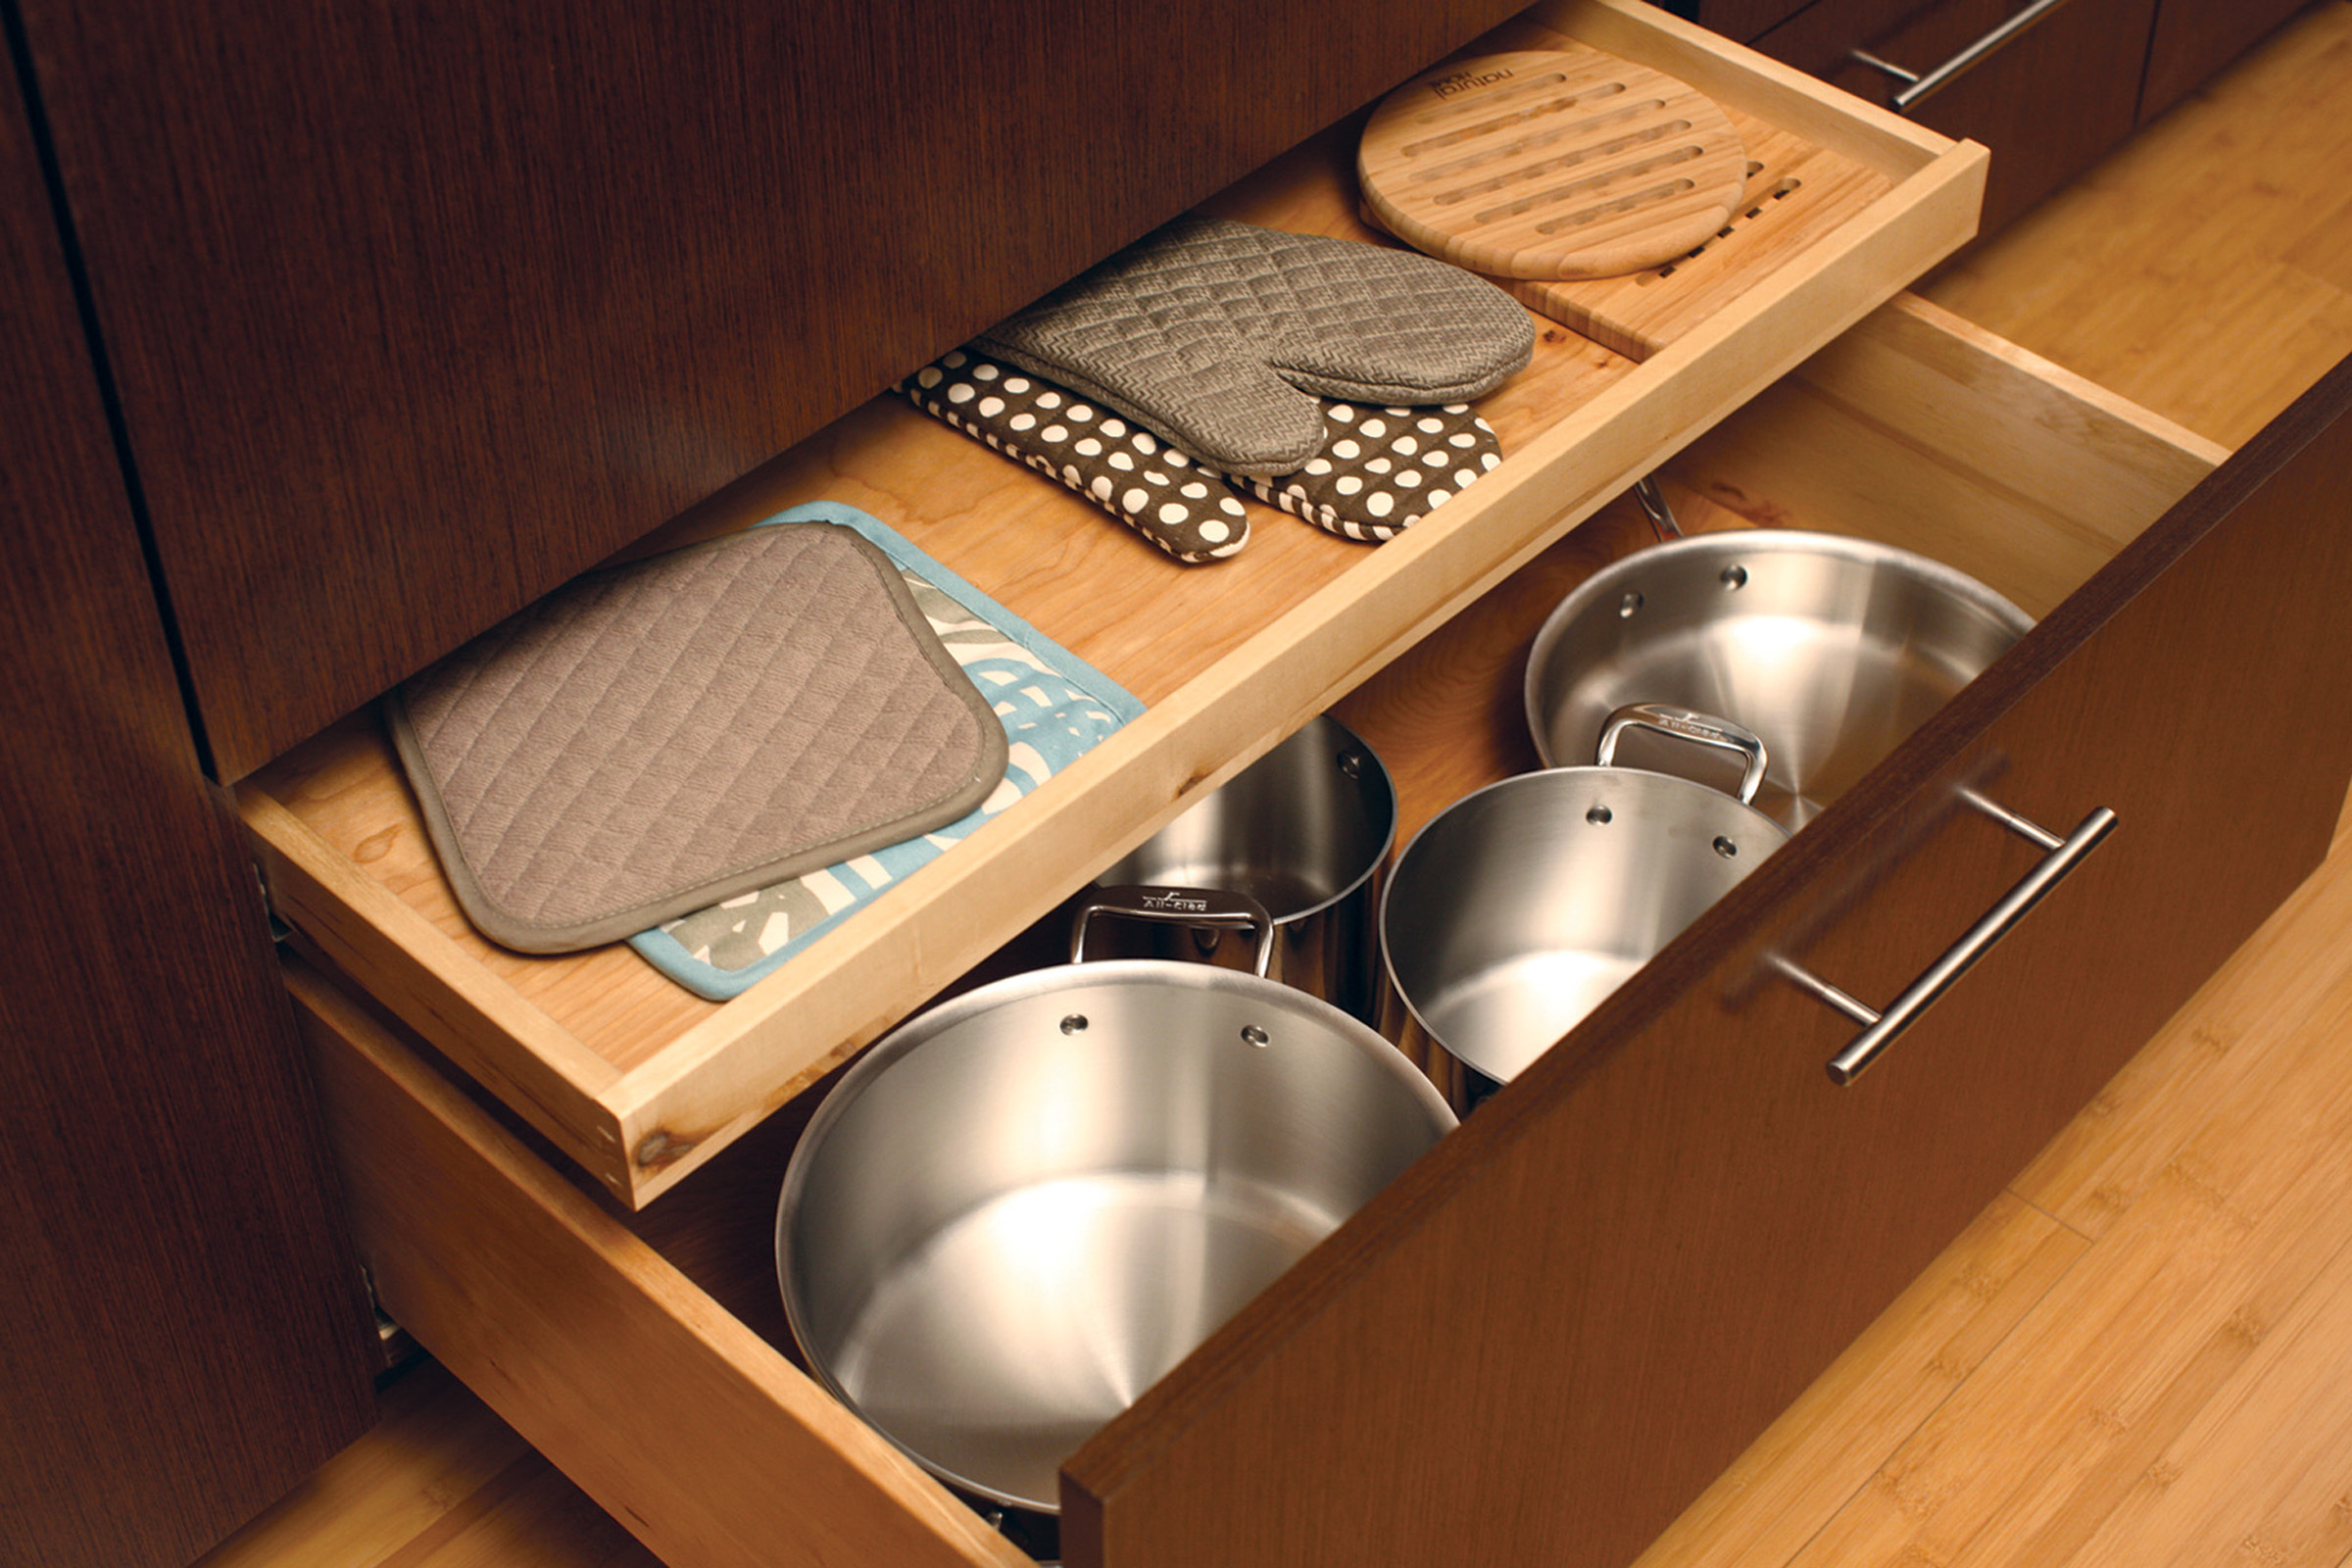 Shallow Roll-Out Above Drawer - Oven Mitt Storage